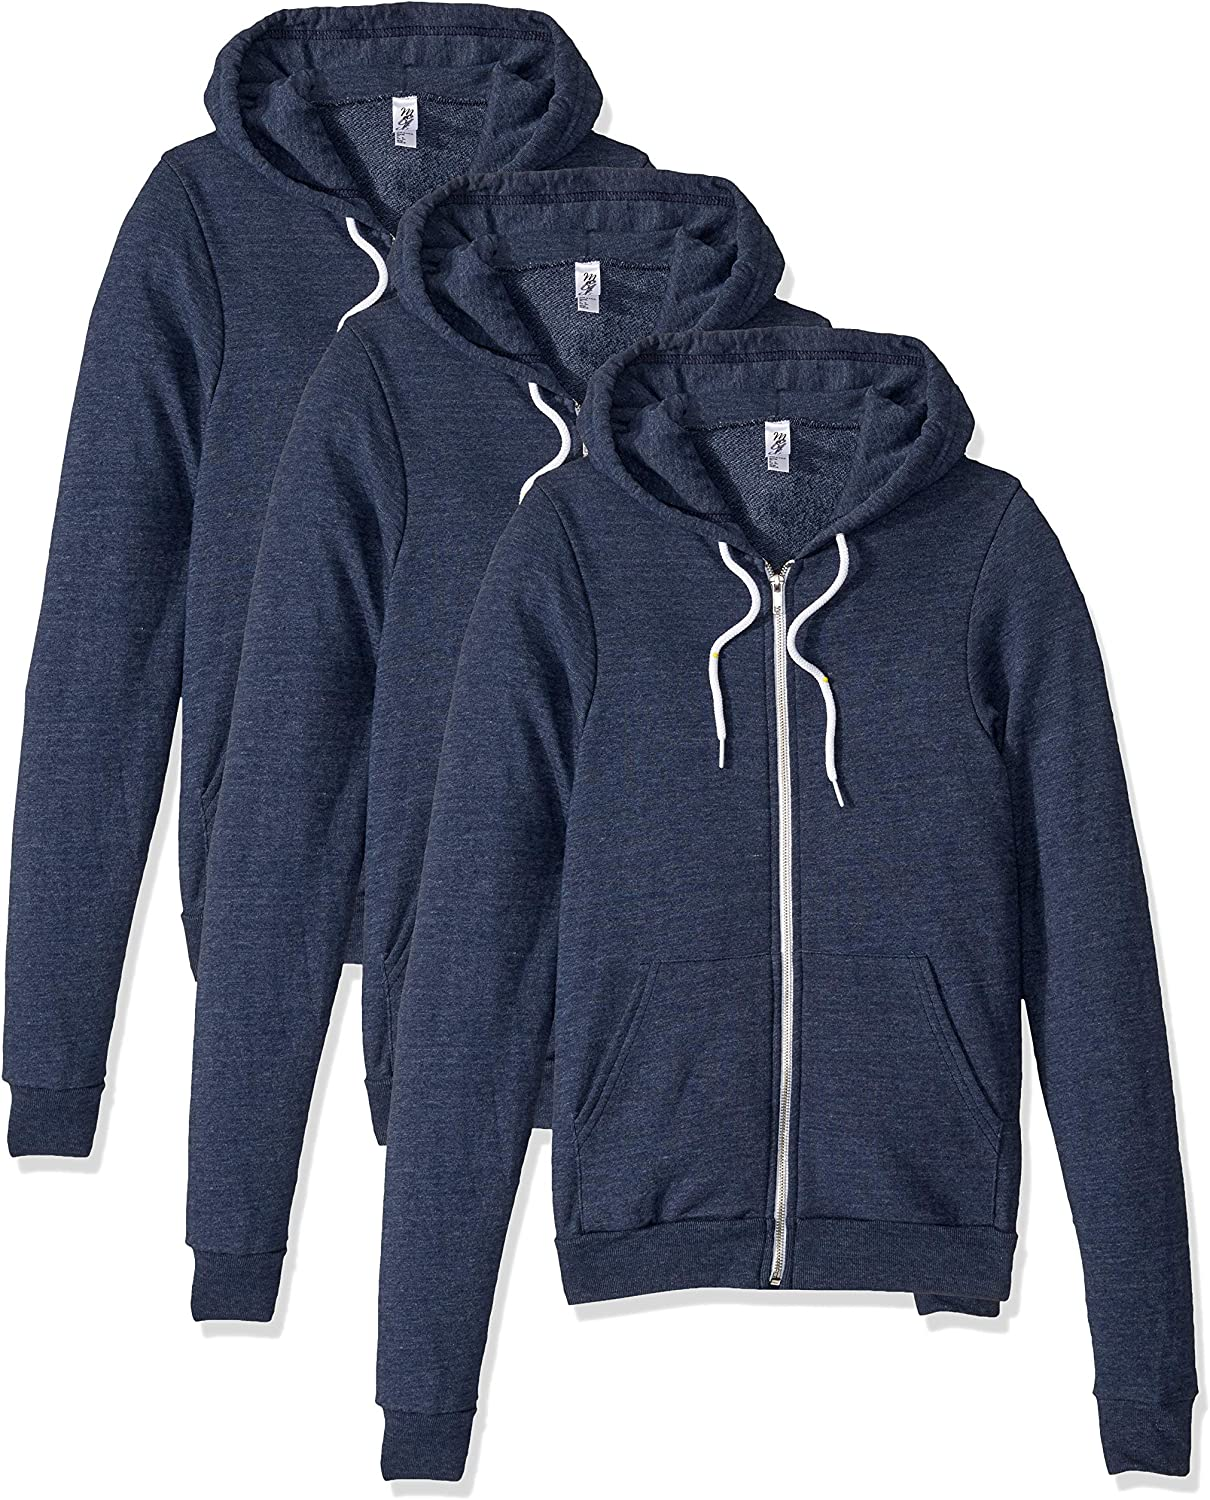 Marky G Apparel 40%OFFの激安セール Men's Triblend Zip 3 Pack Hood 毎週更新 Terry